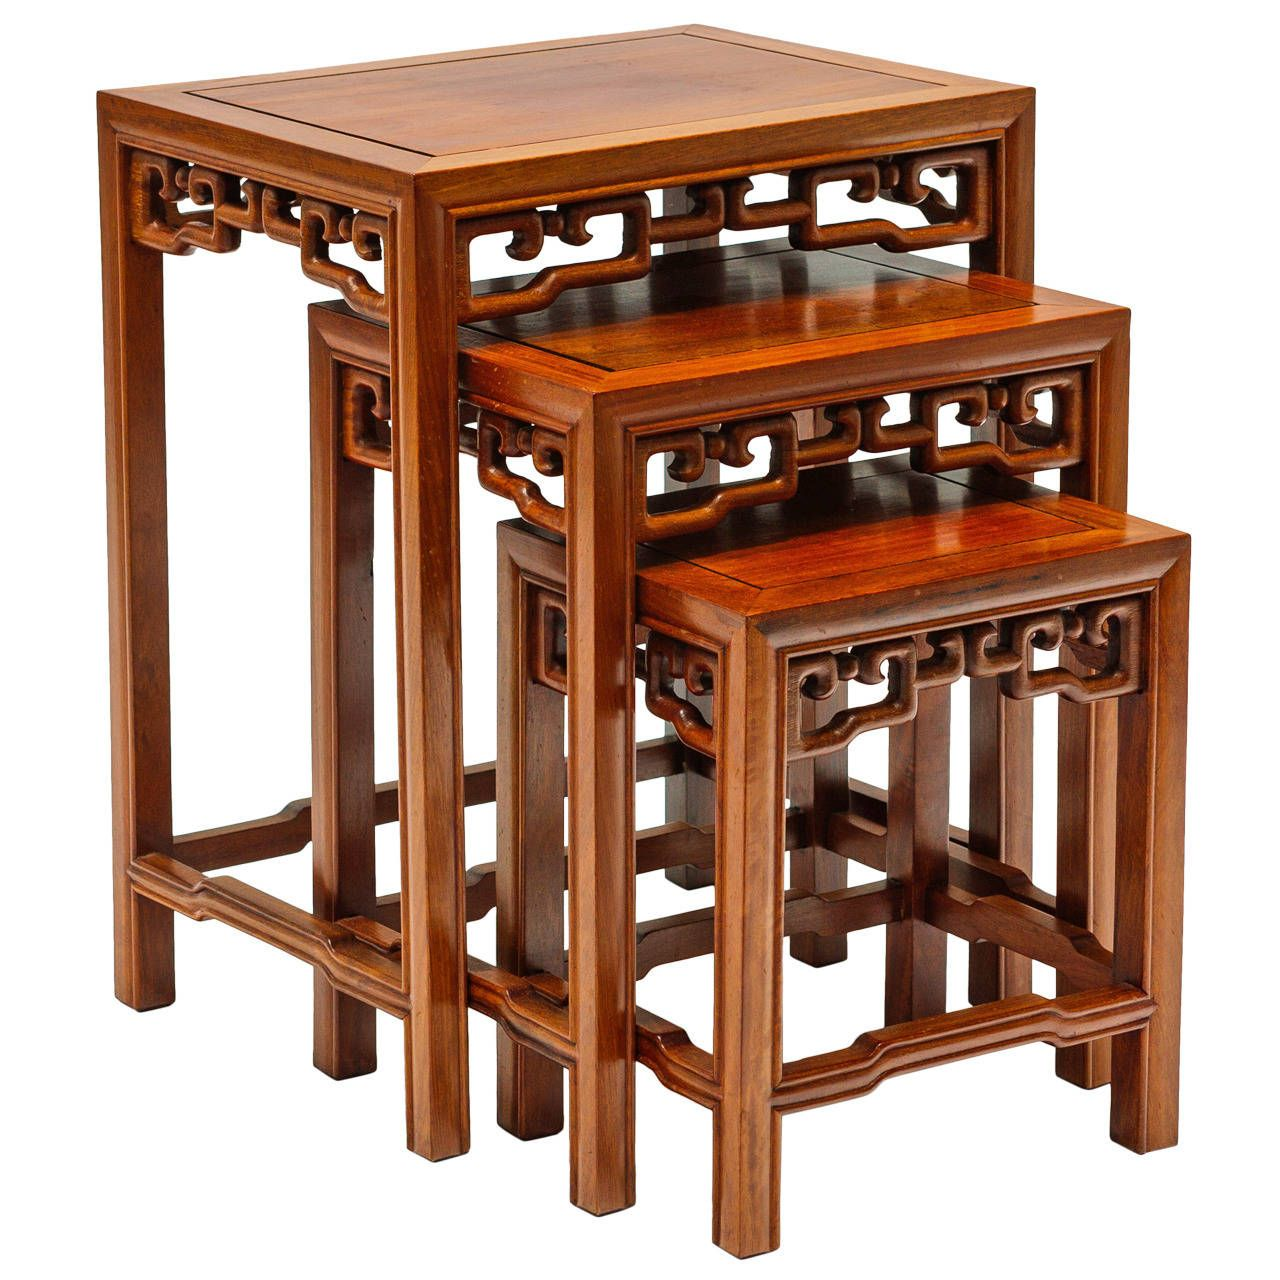 View This Item And Discover Similar Nesting Tables And Stacking Tables For  Sale At   Set Of 3 Asian Modern Teak Nesting Tables.